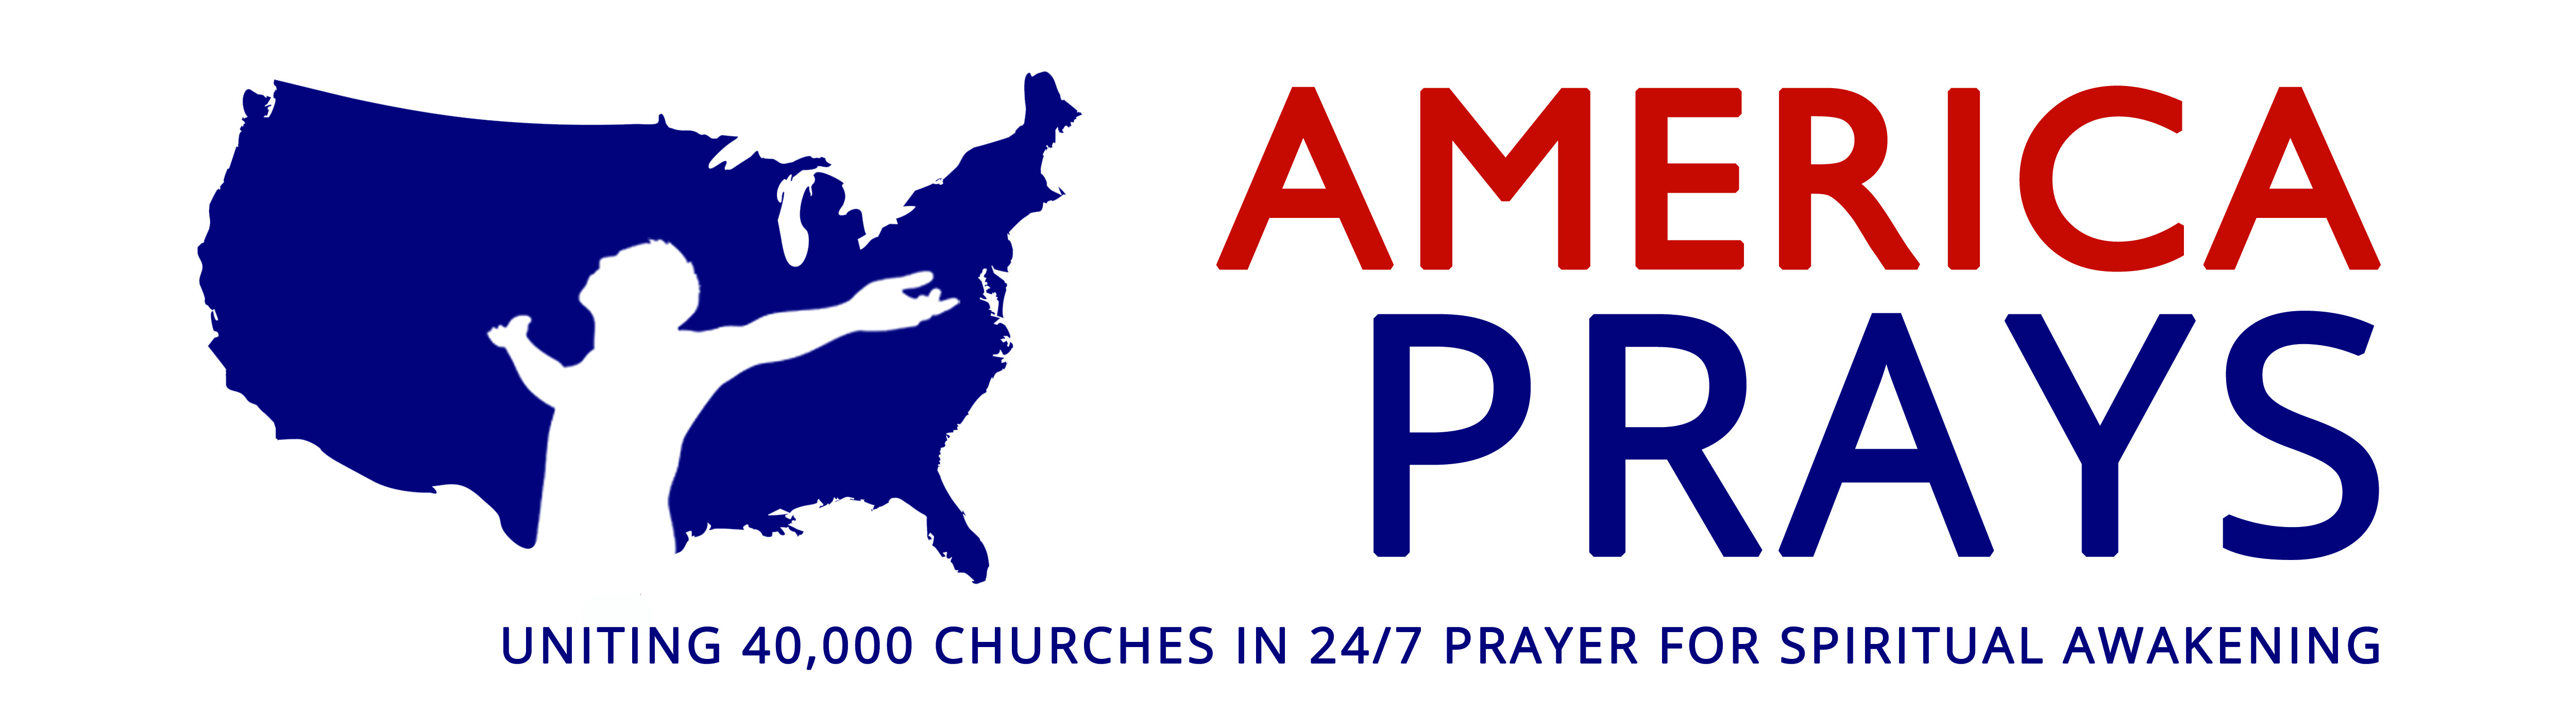 America prays horizontal logo 4c